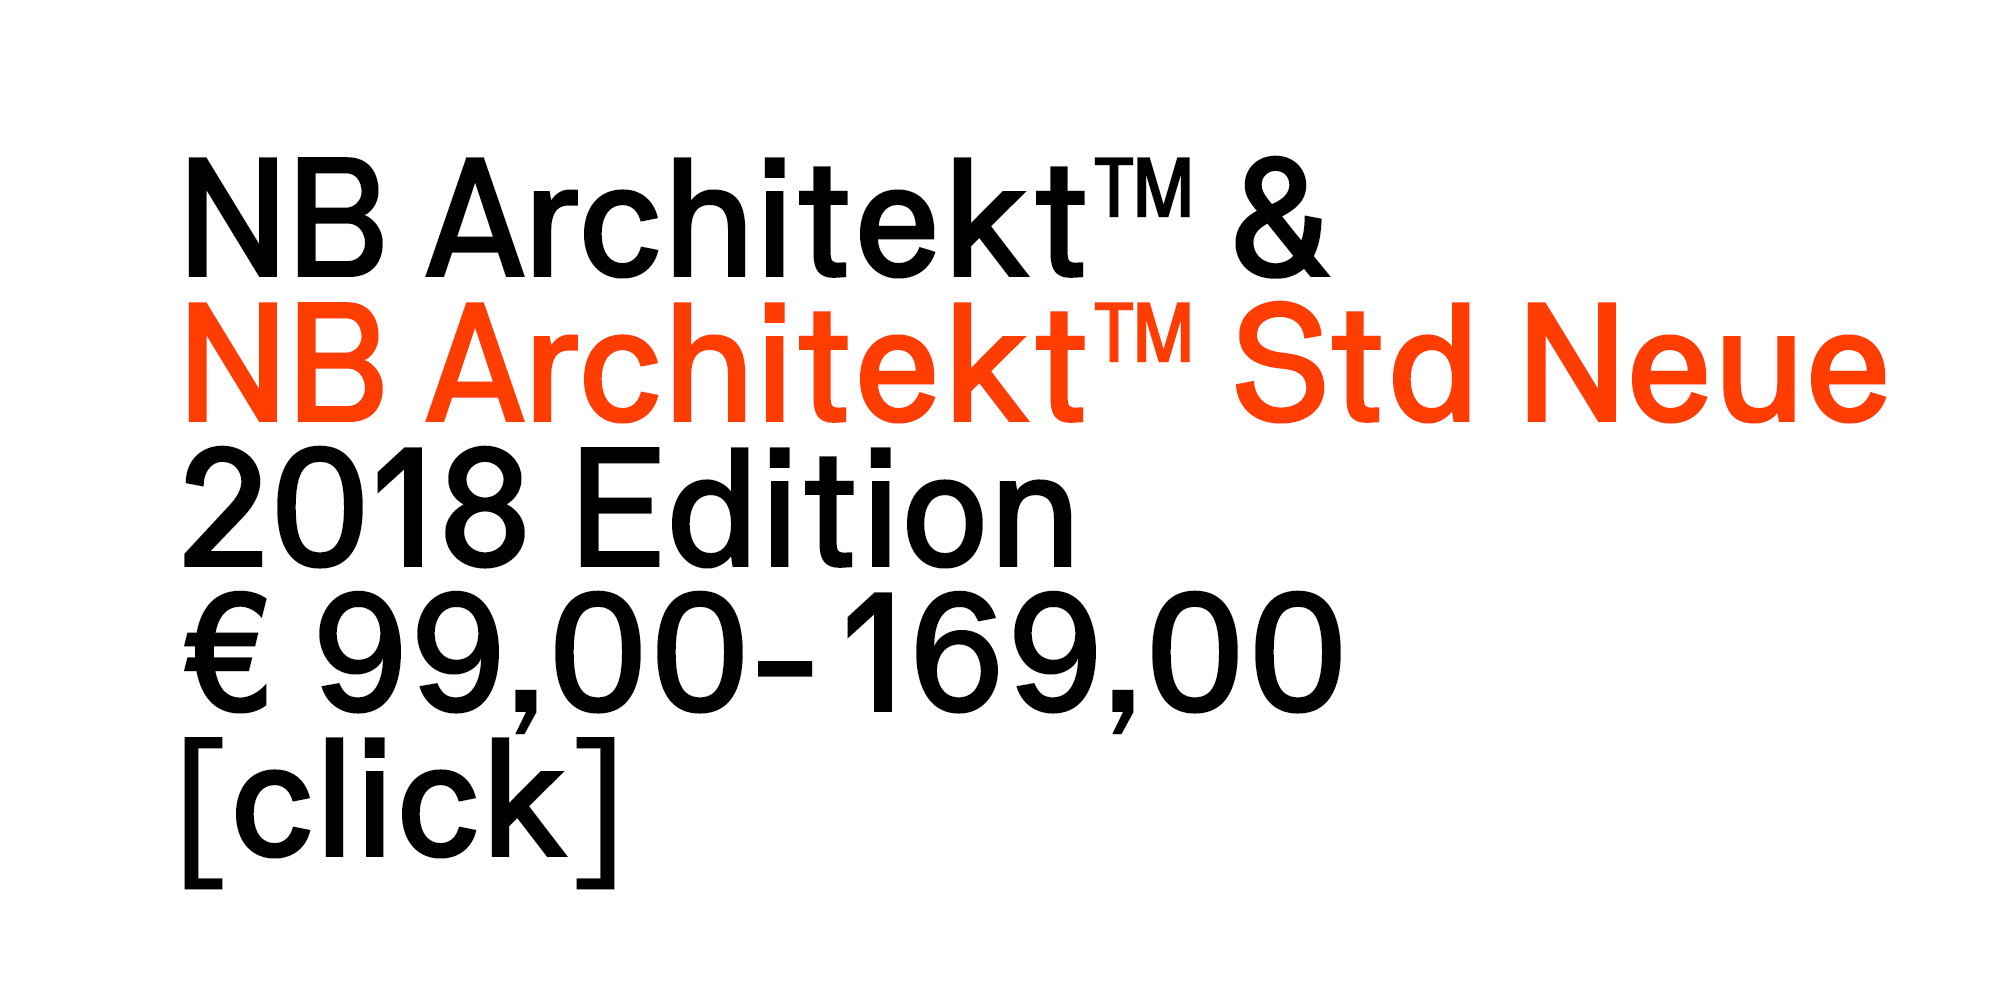 NBL-Architekt_Std_Neue_Cover_2018